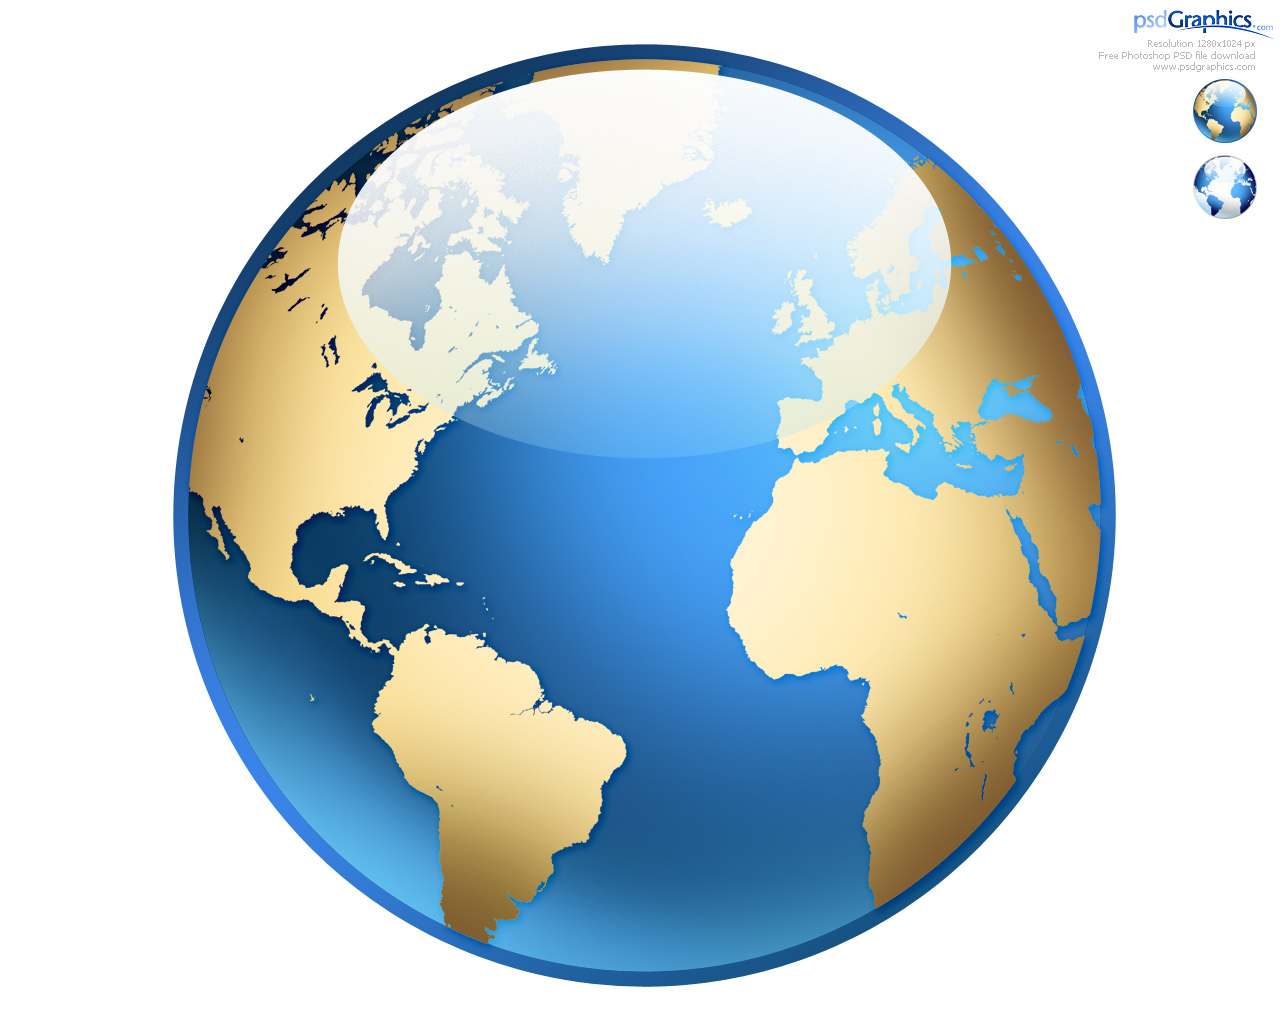 Photoshop world globe icon psdgraphics globe icon gumiabroncs